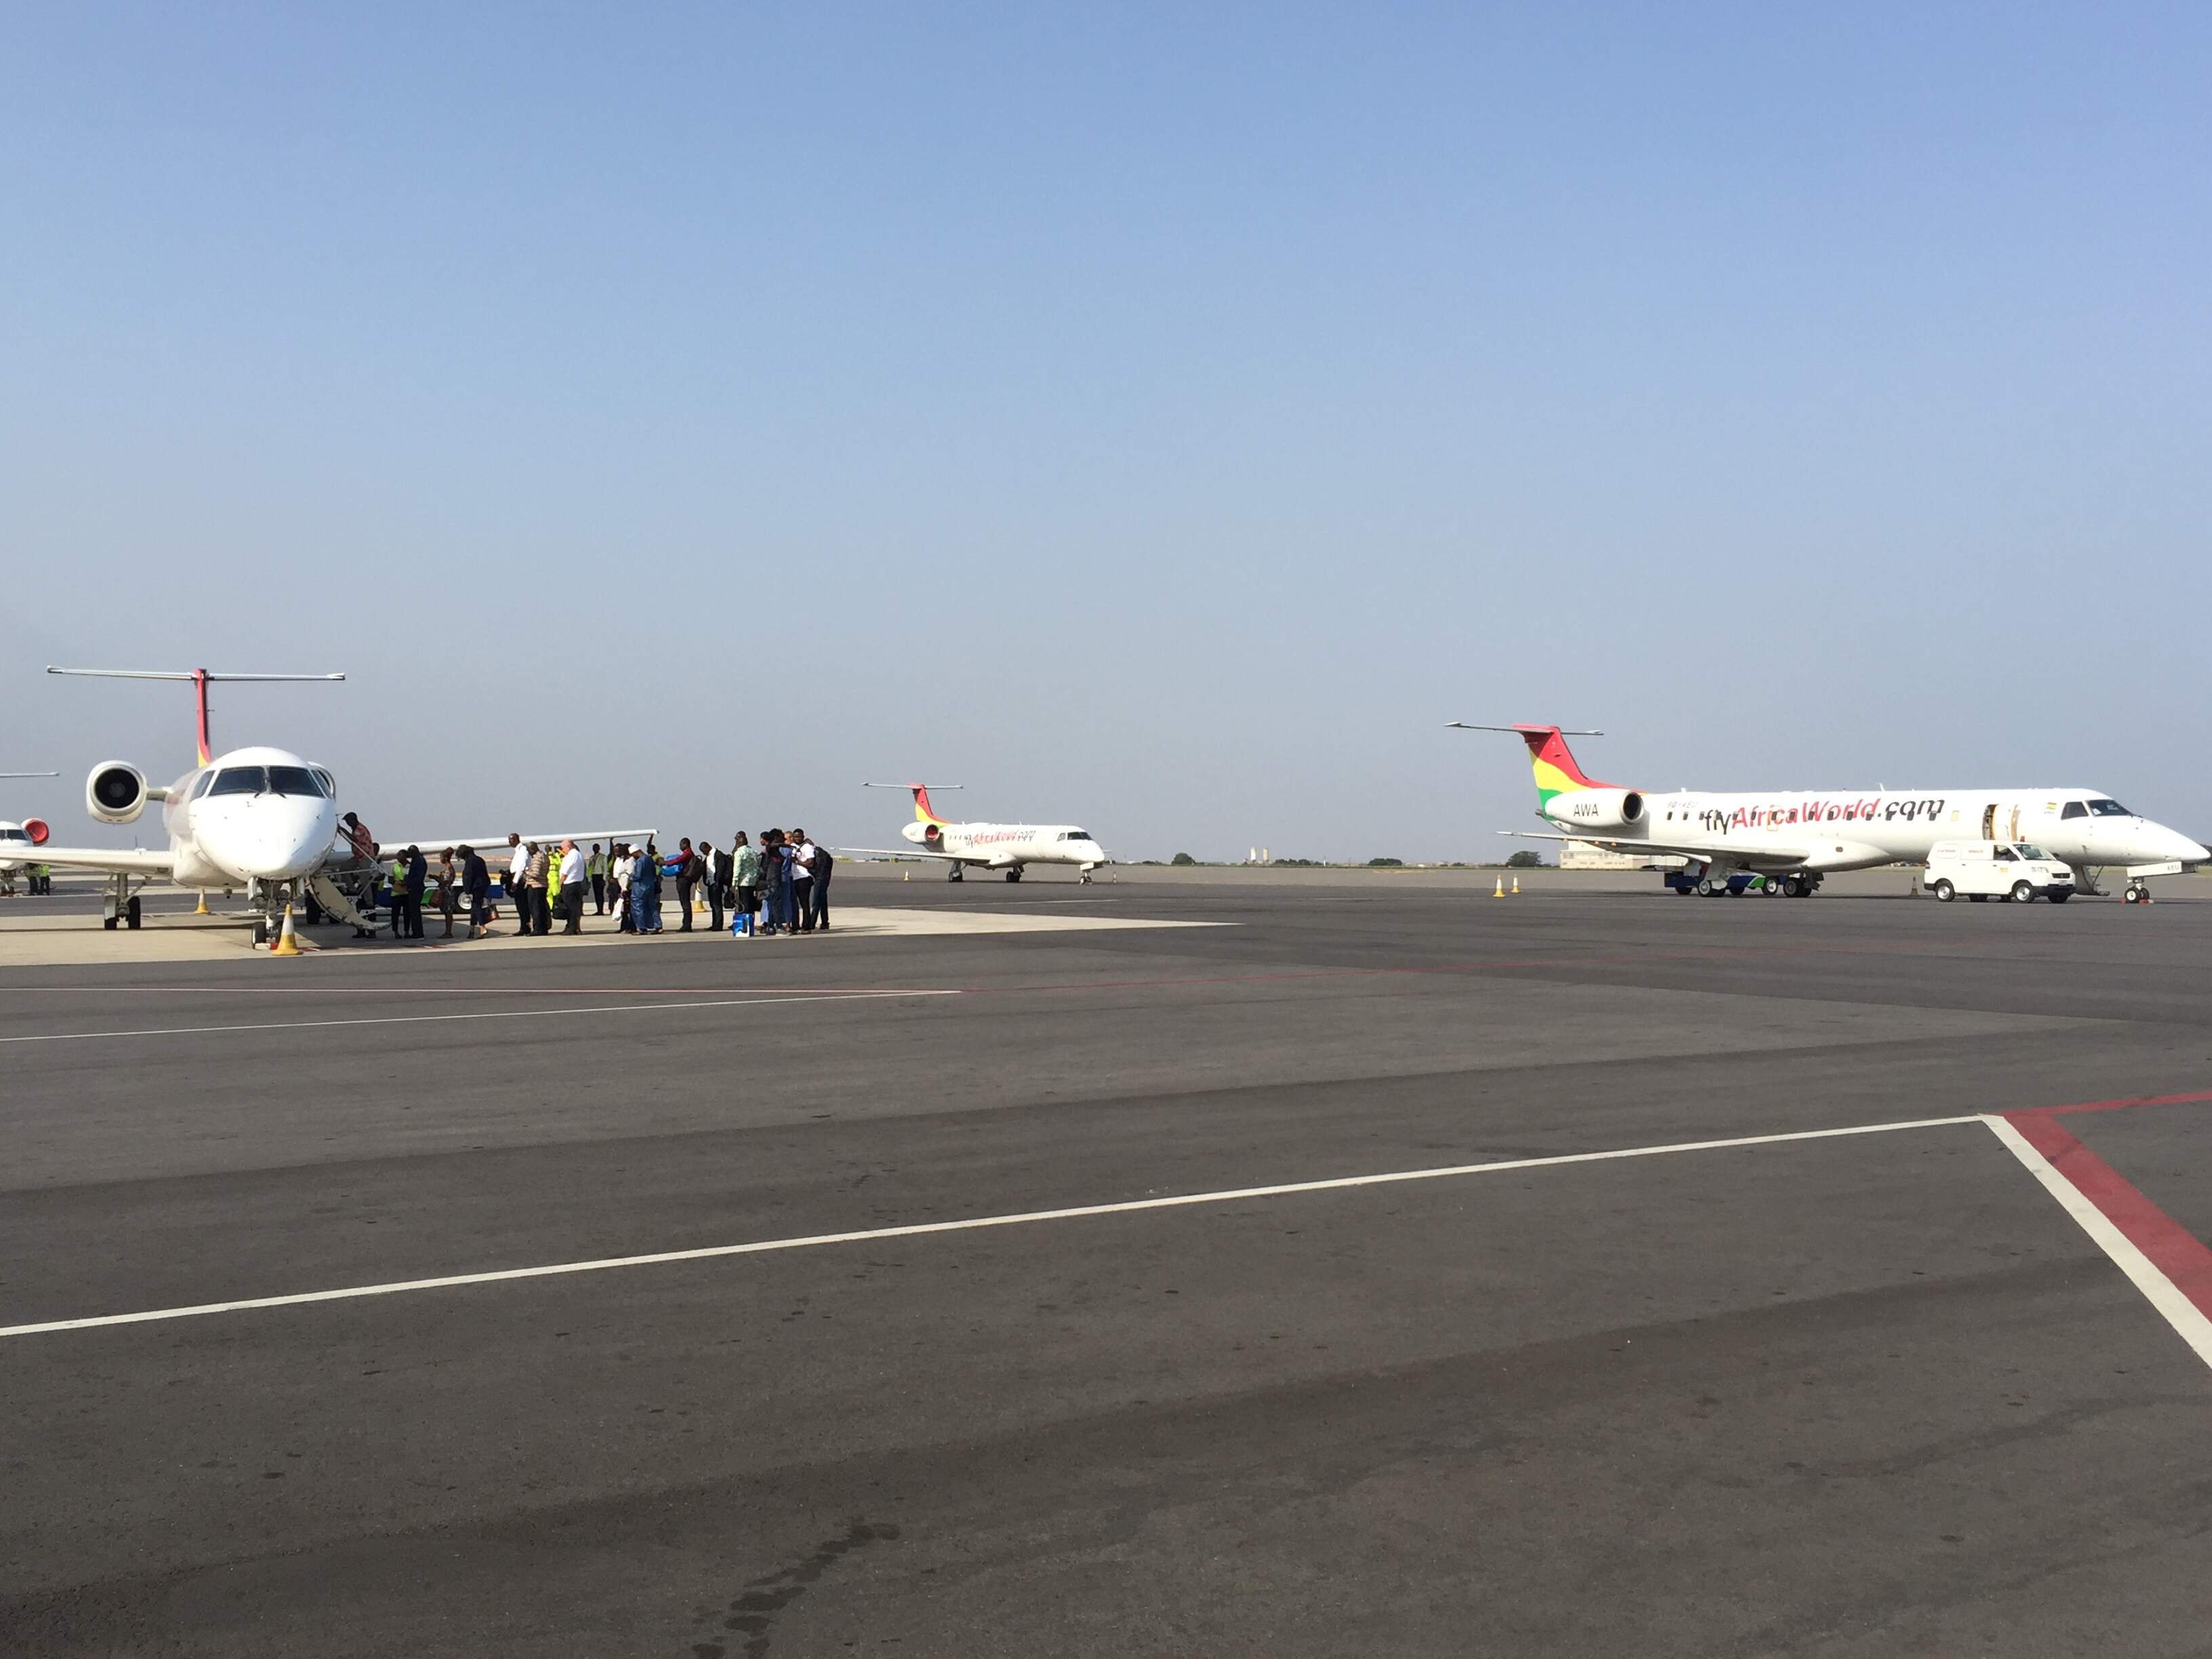 Ghana to reopen for international PAX flights